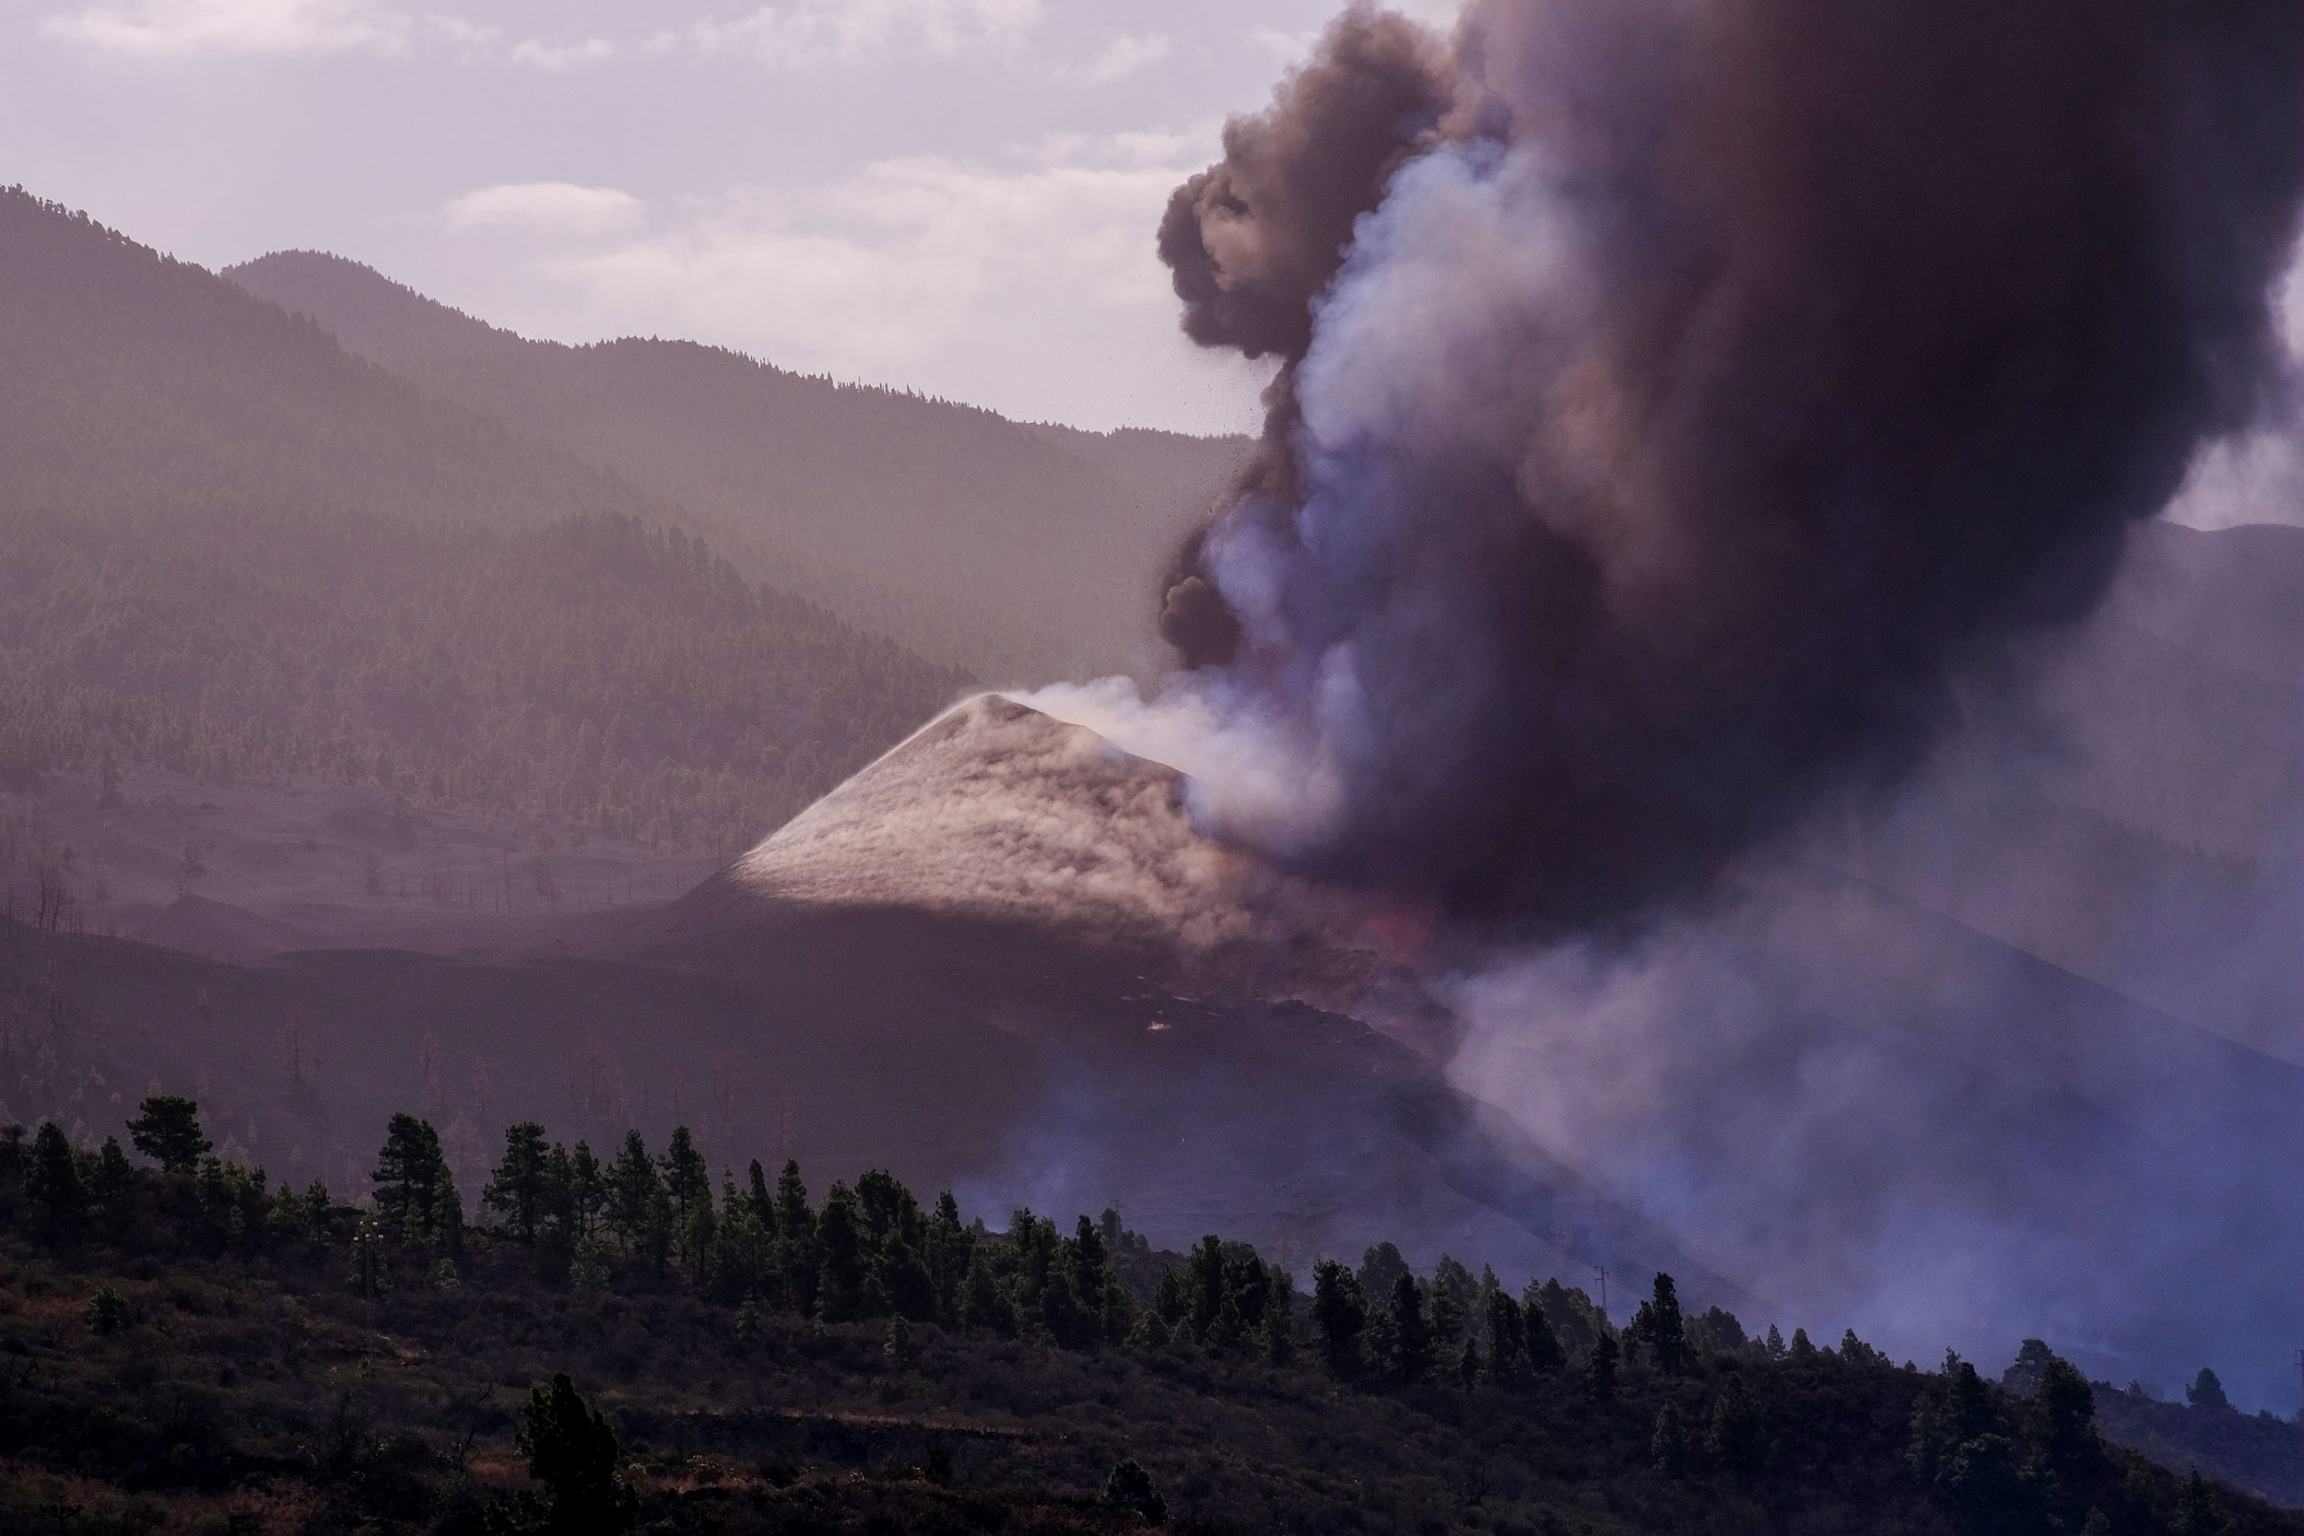 Smoke rises from a volcano on the Canary island of La Palma, Spain, Spain on Friday, Oct. 1, 2021.